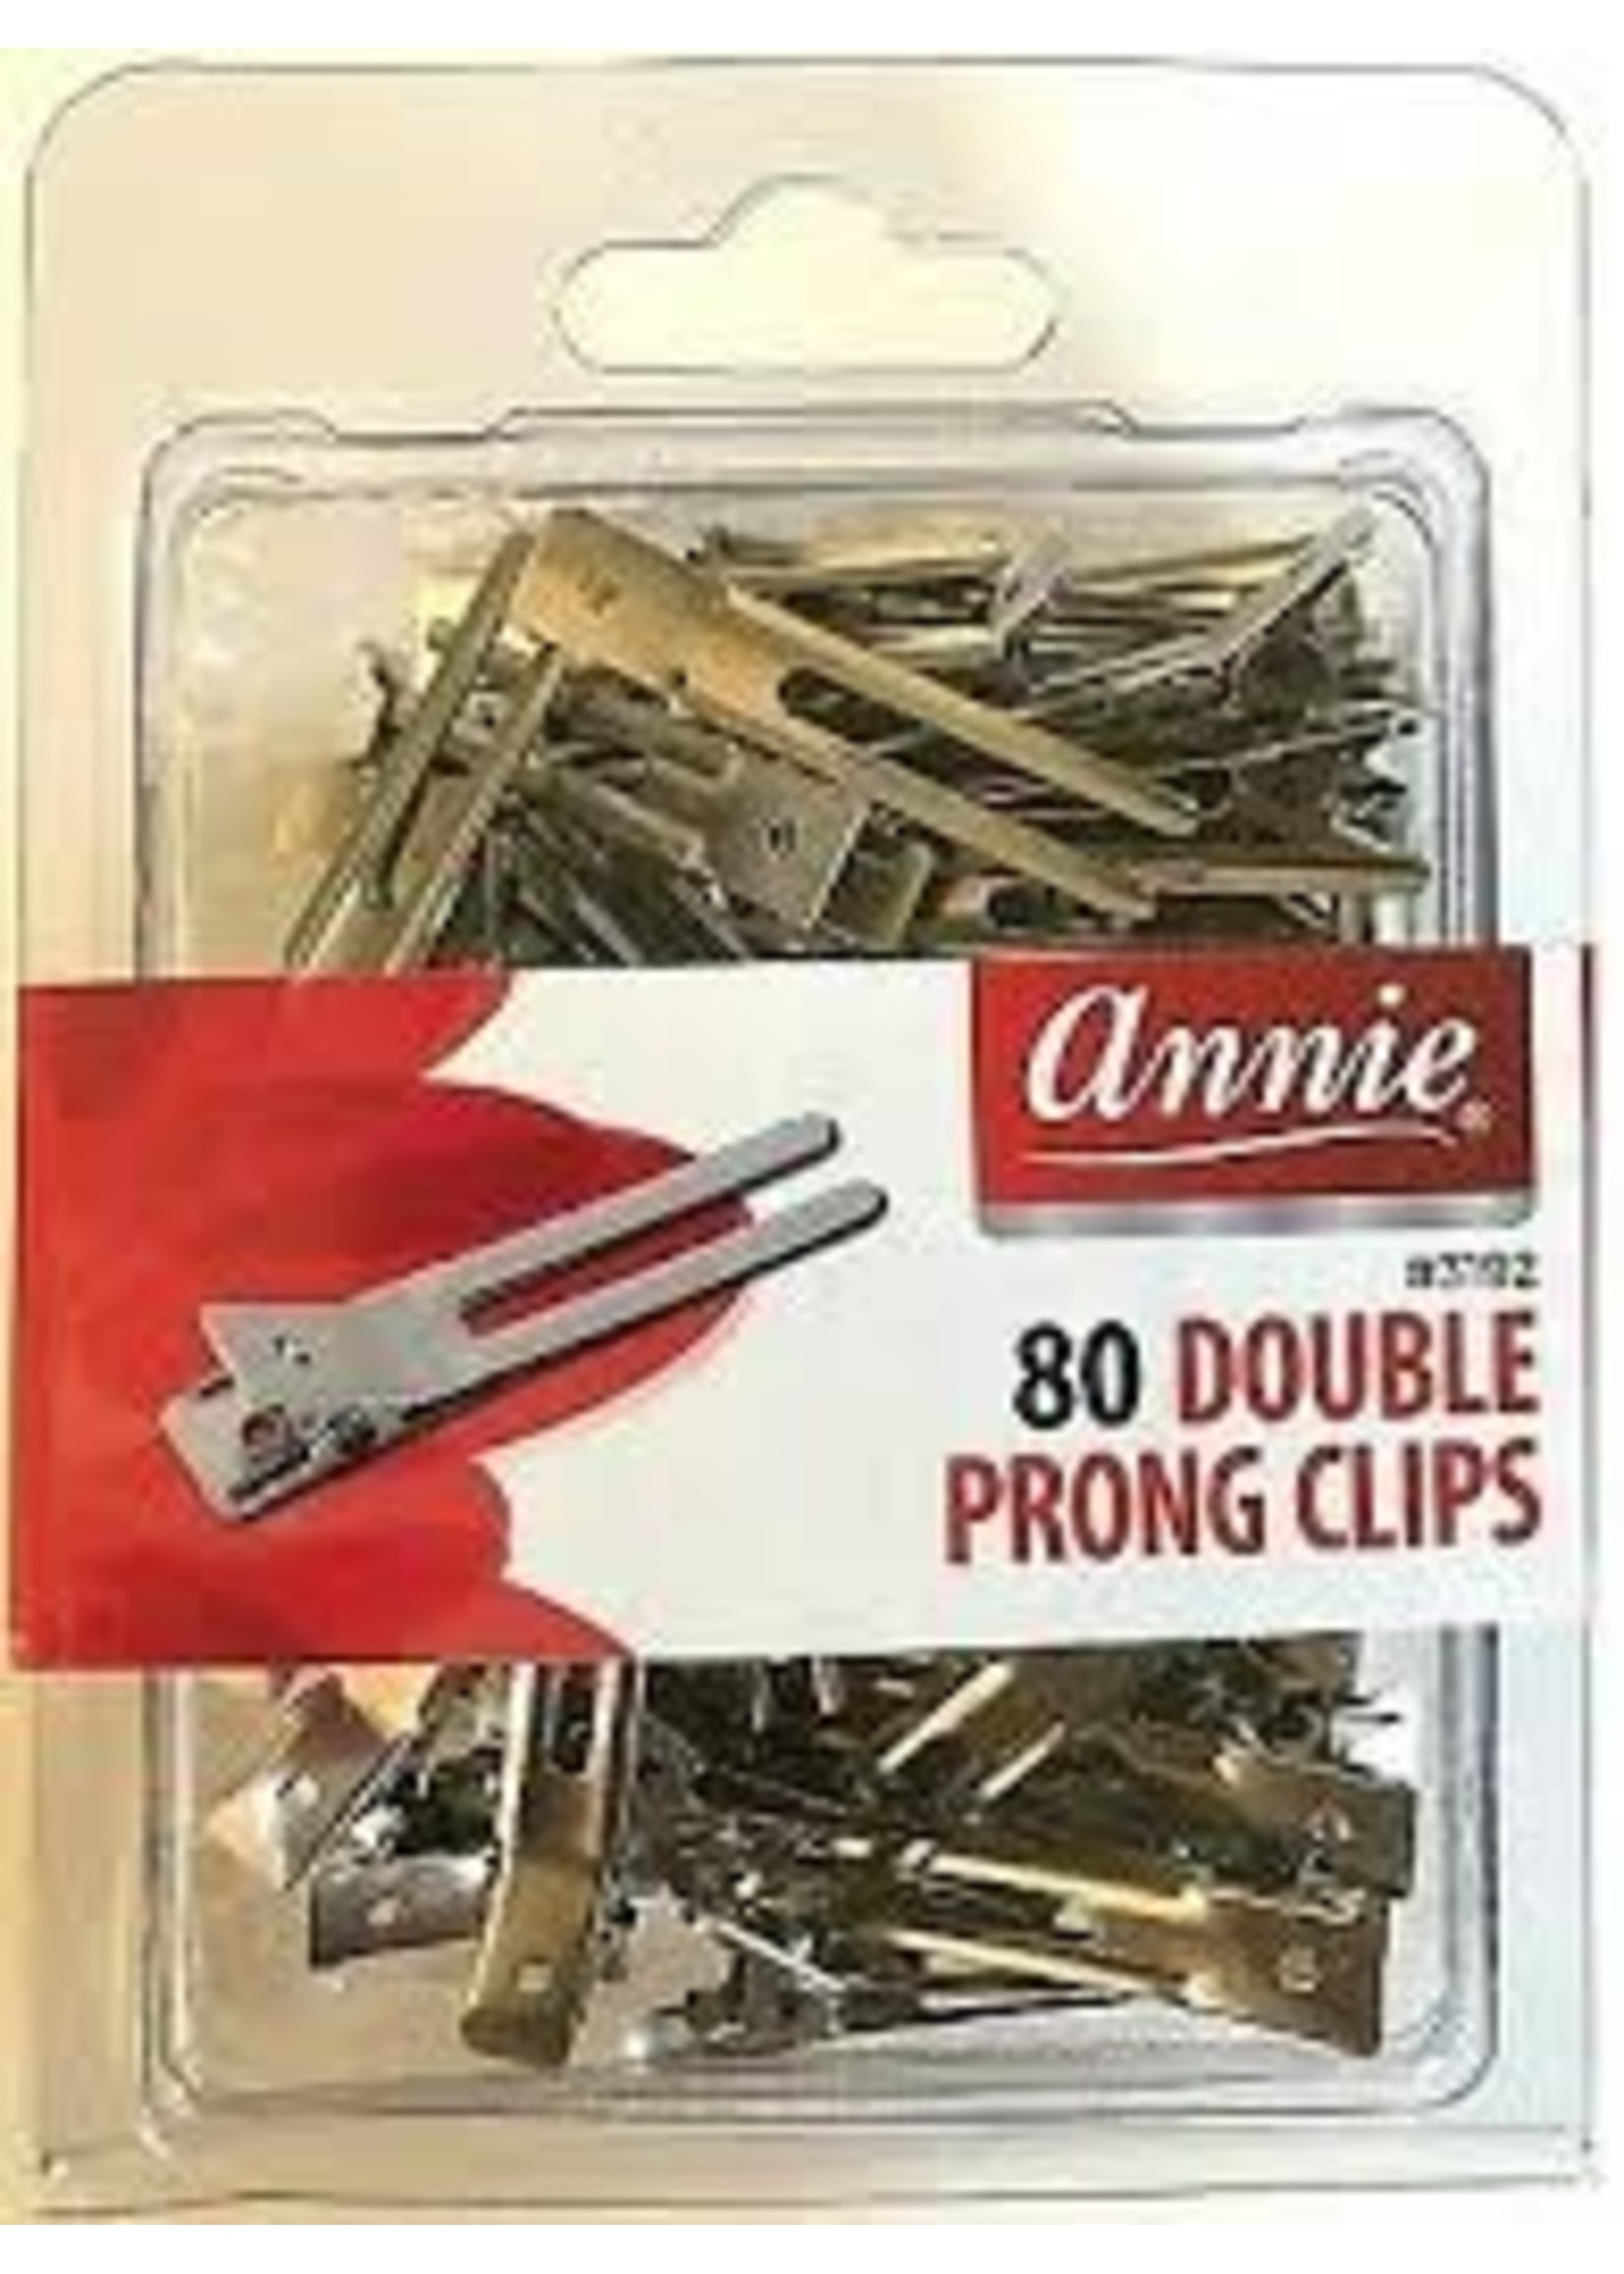 Annie Prong Double Clips 80ct